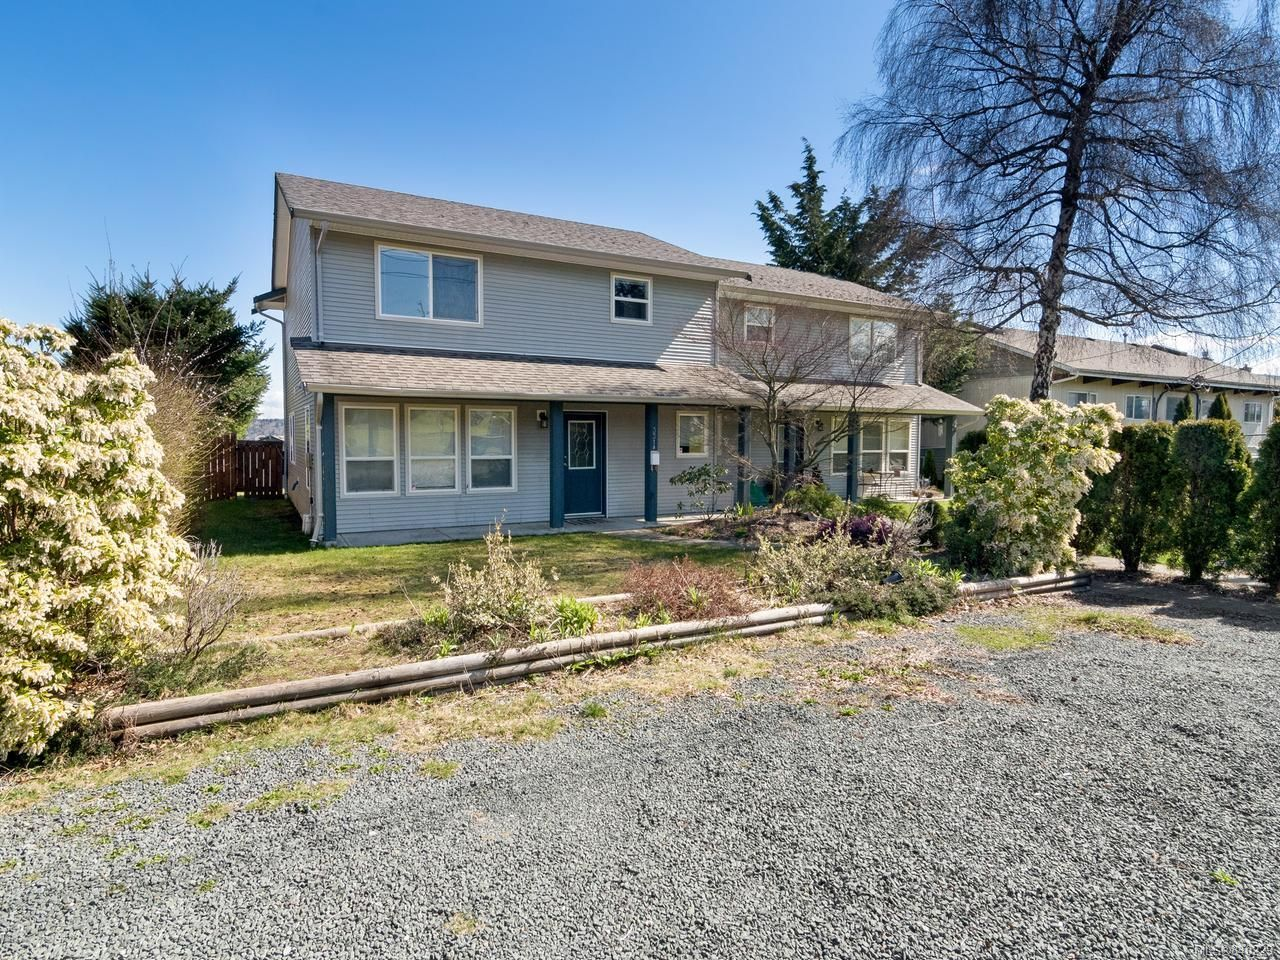 Main Photo: A 331 McLean St in CAMPBELL RIVER: CR Campbell River Central Half Duplex for sale (Campbell River)  : MLS®# 840229